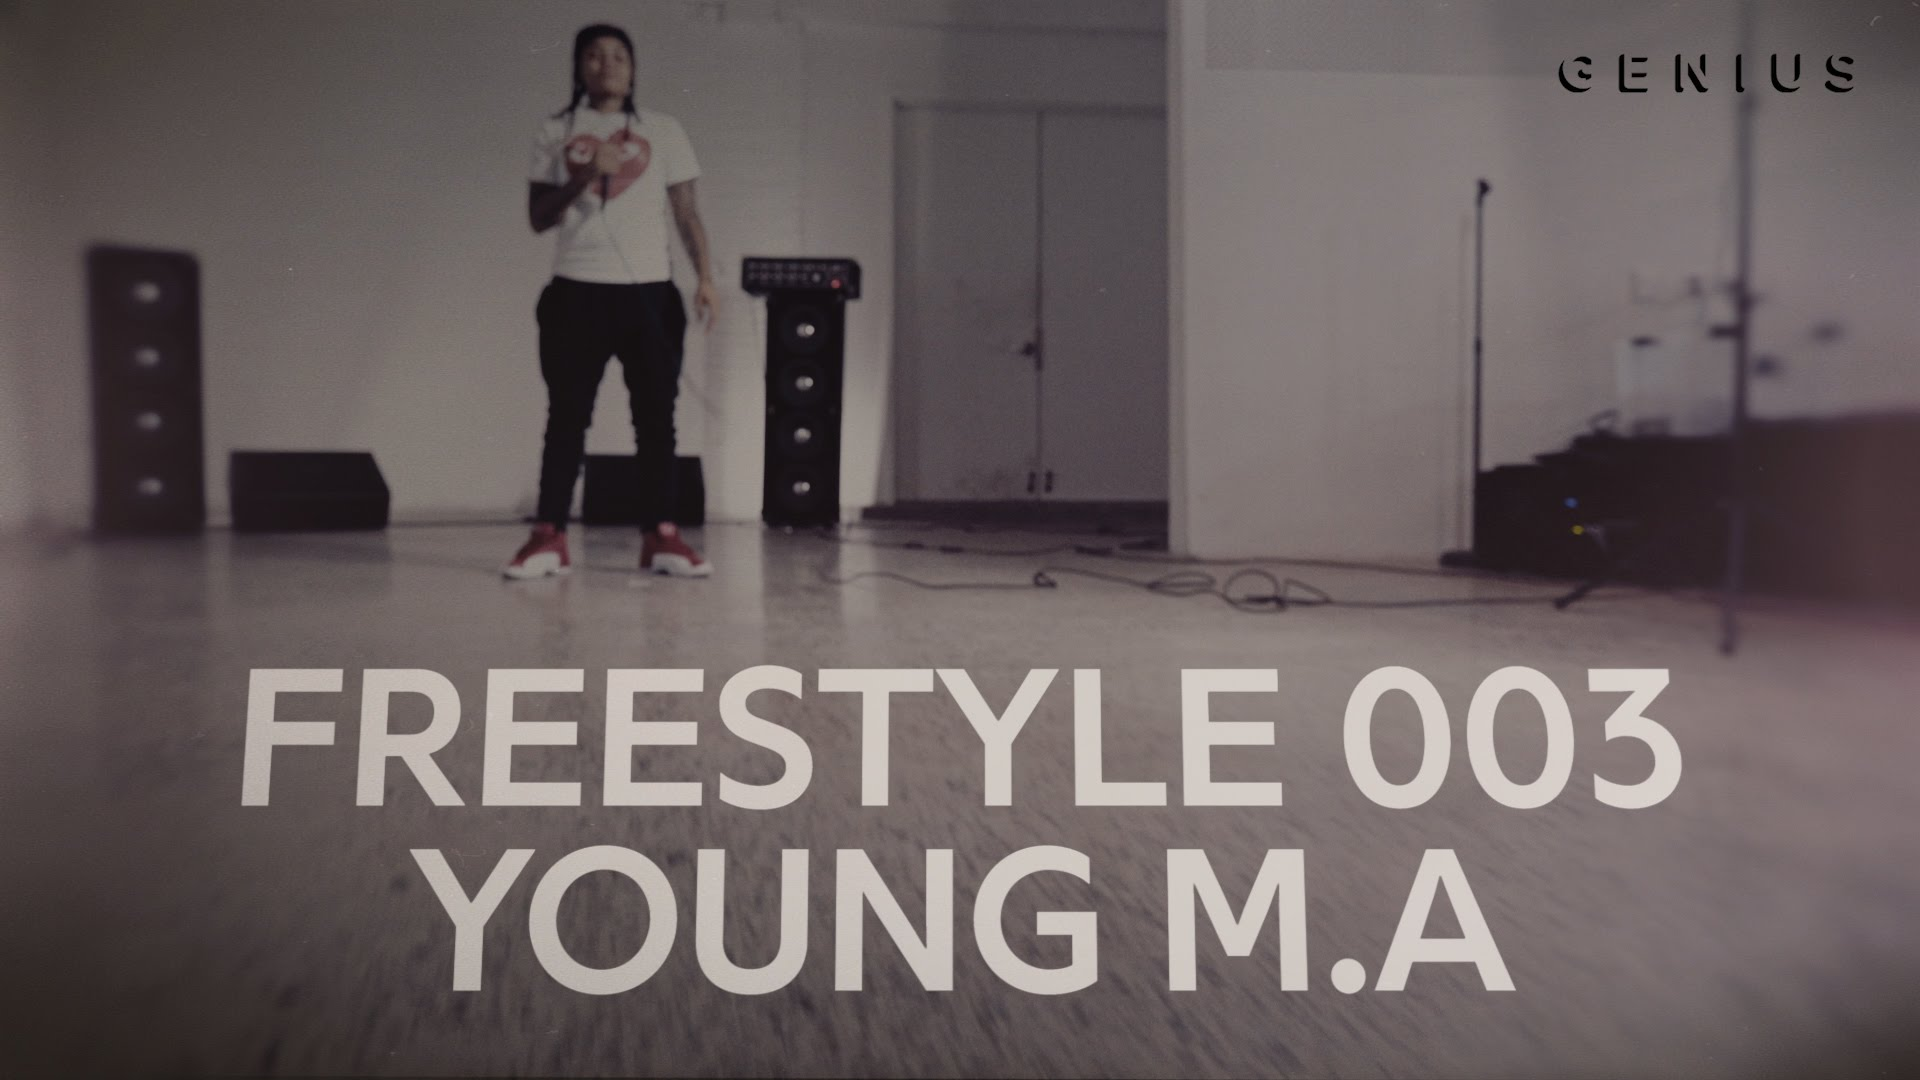 Young M.A's 'Freestyle 003' for Genius